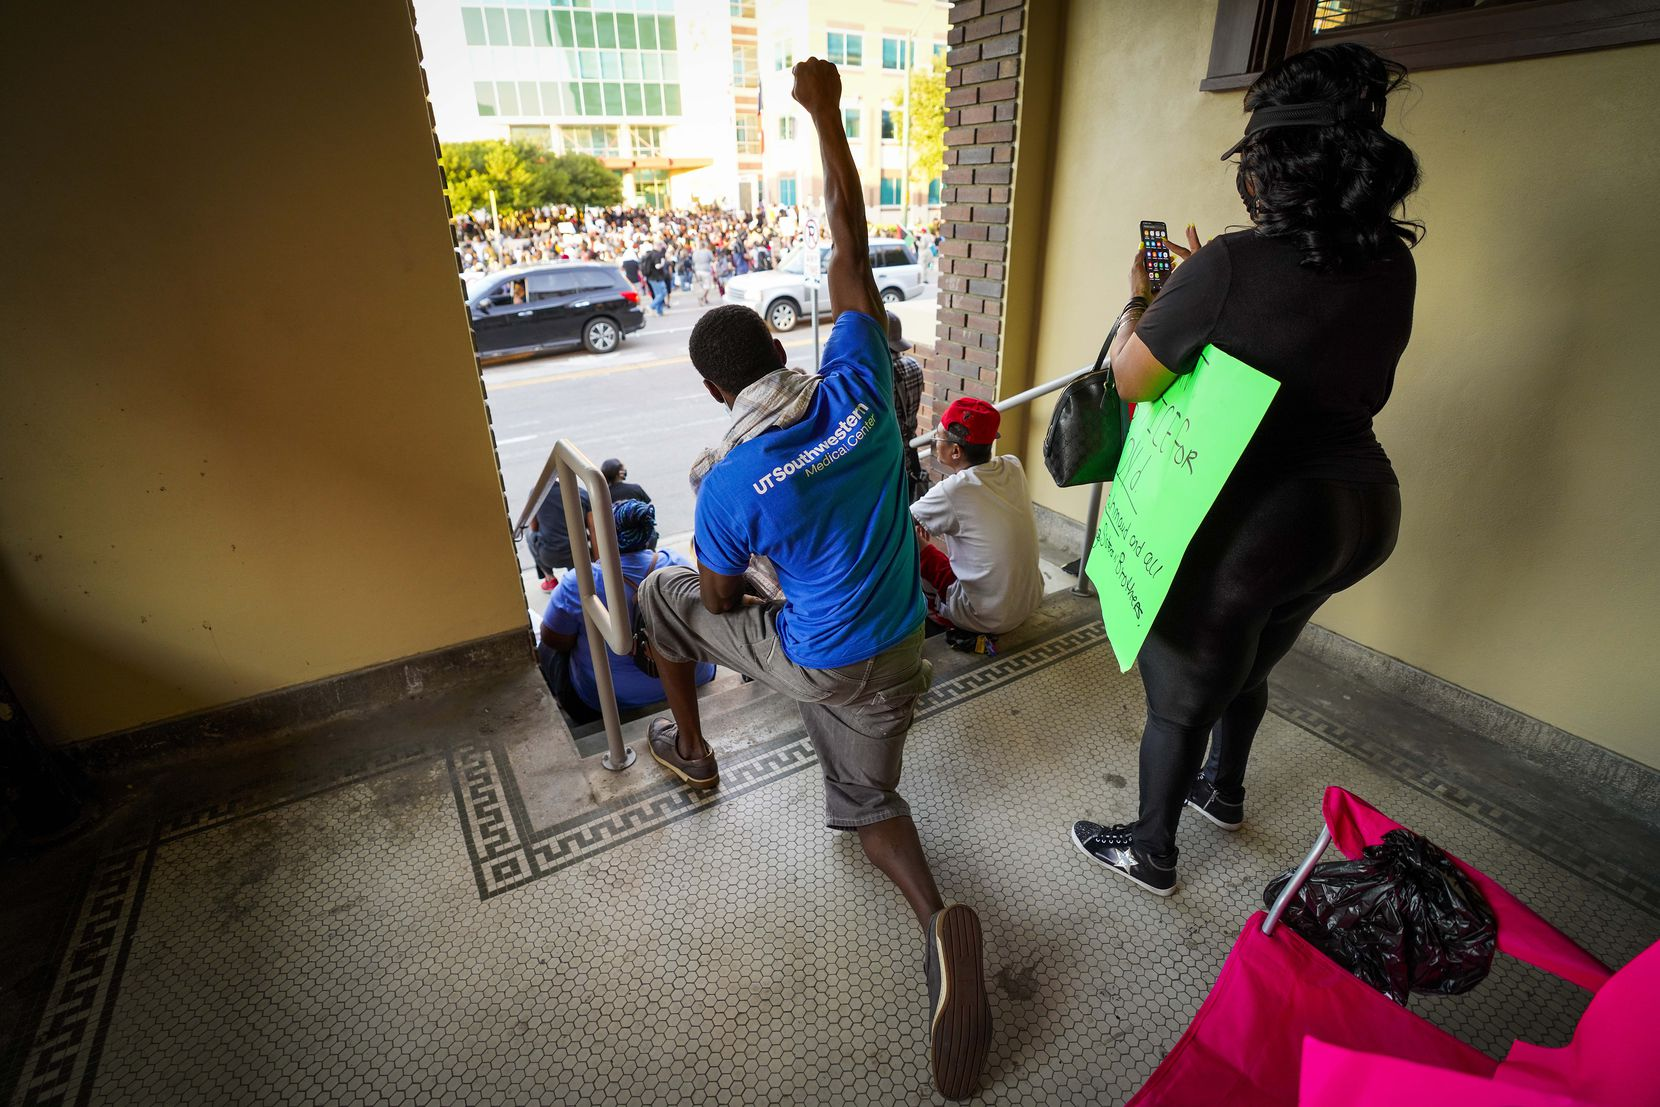 Jamal Joyner takes a knee in honor of George Floyd during a protest against police brutality at the Dallas Police Headquarters on Friday, May 29, 2020, in Dallas.